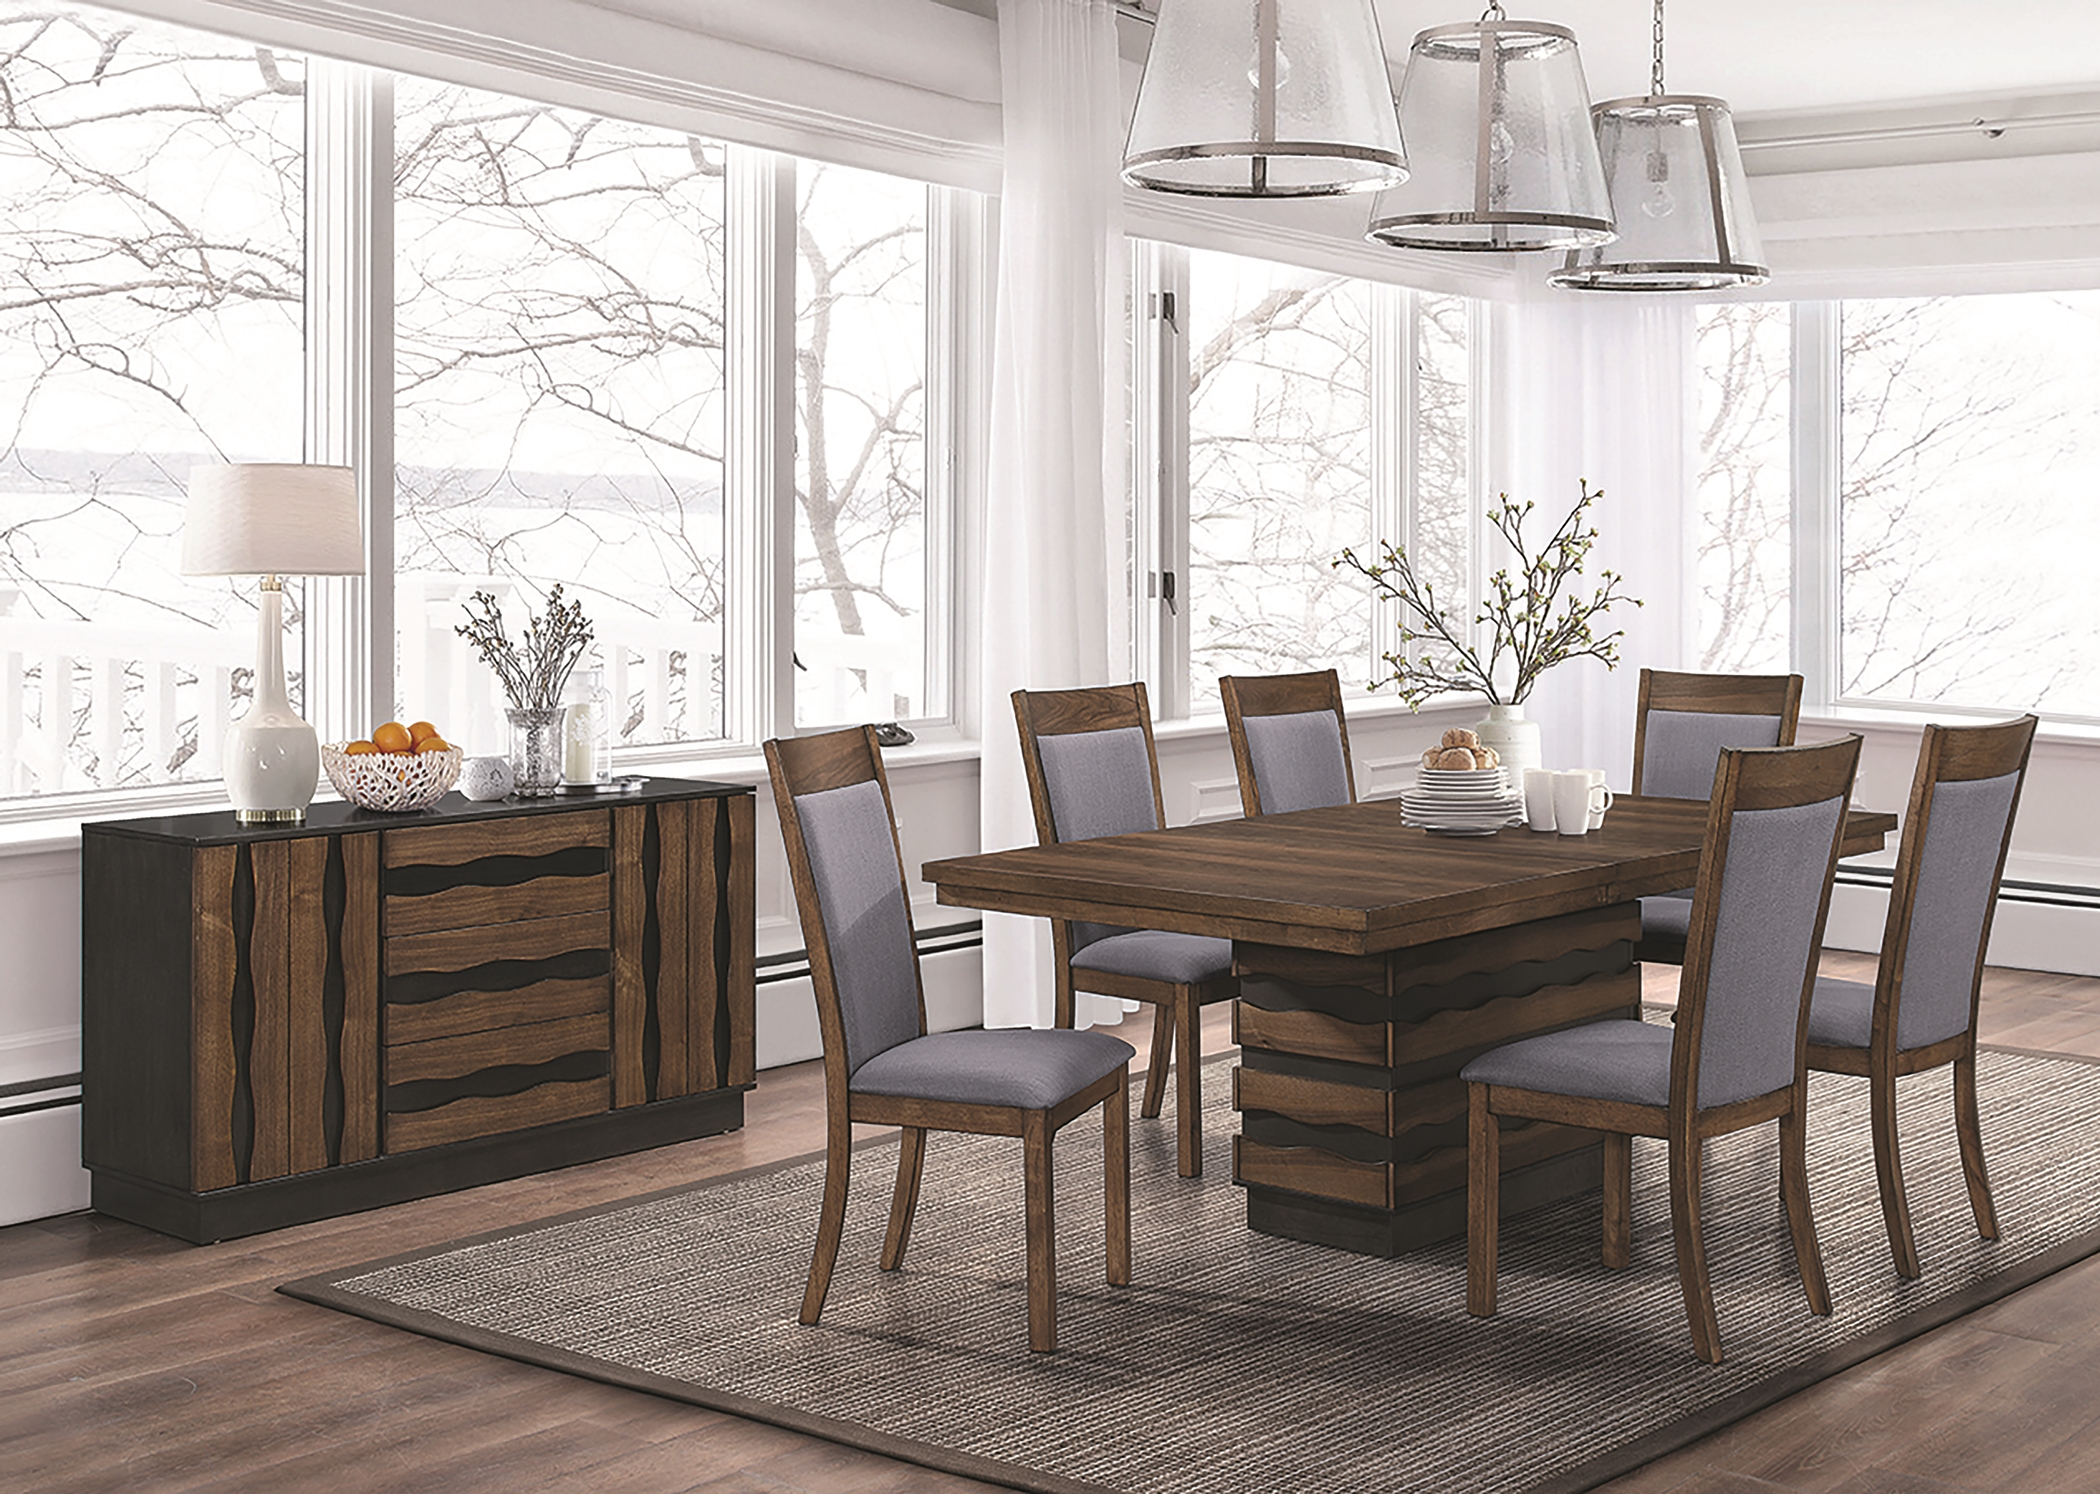 Octavia Rustic 5 Pc. Set